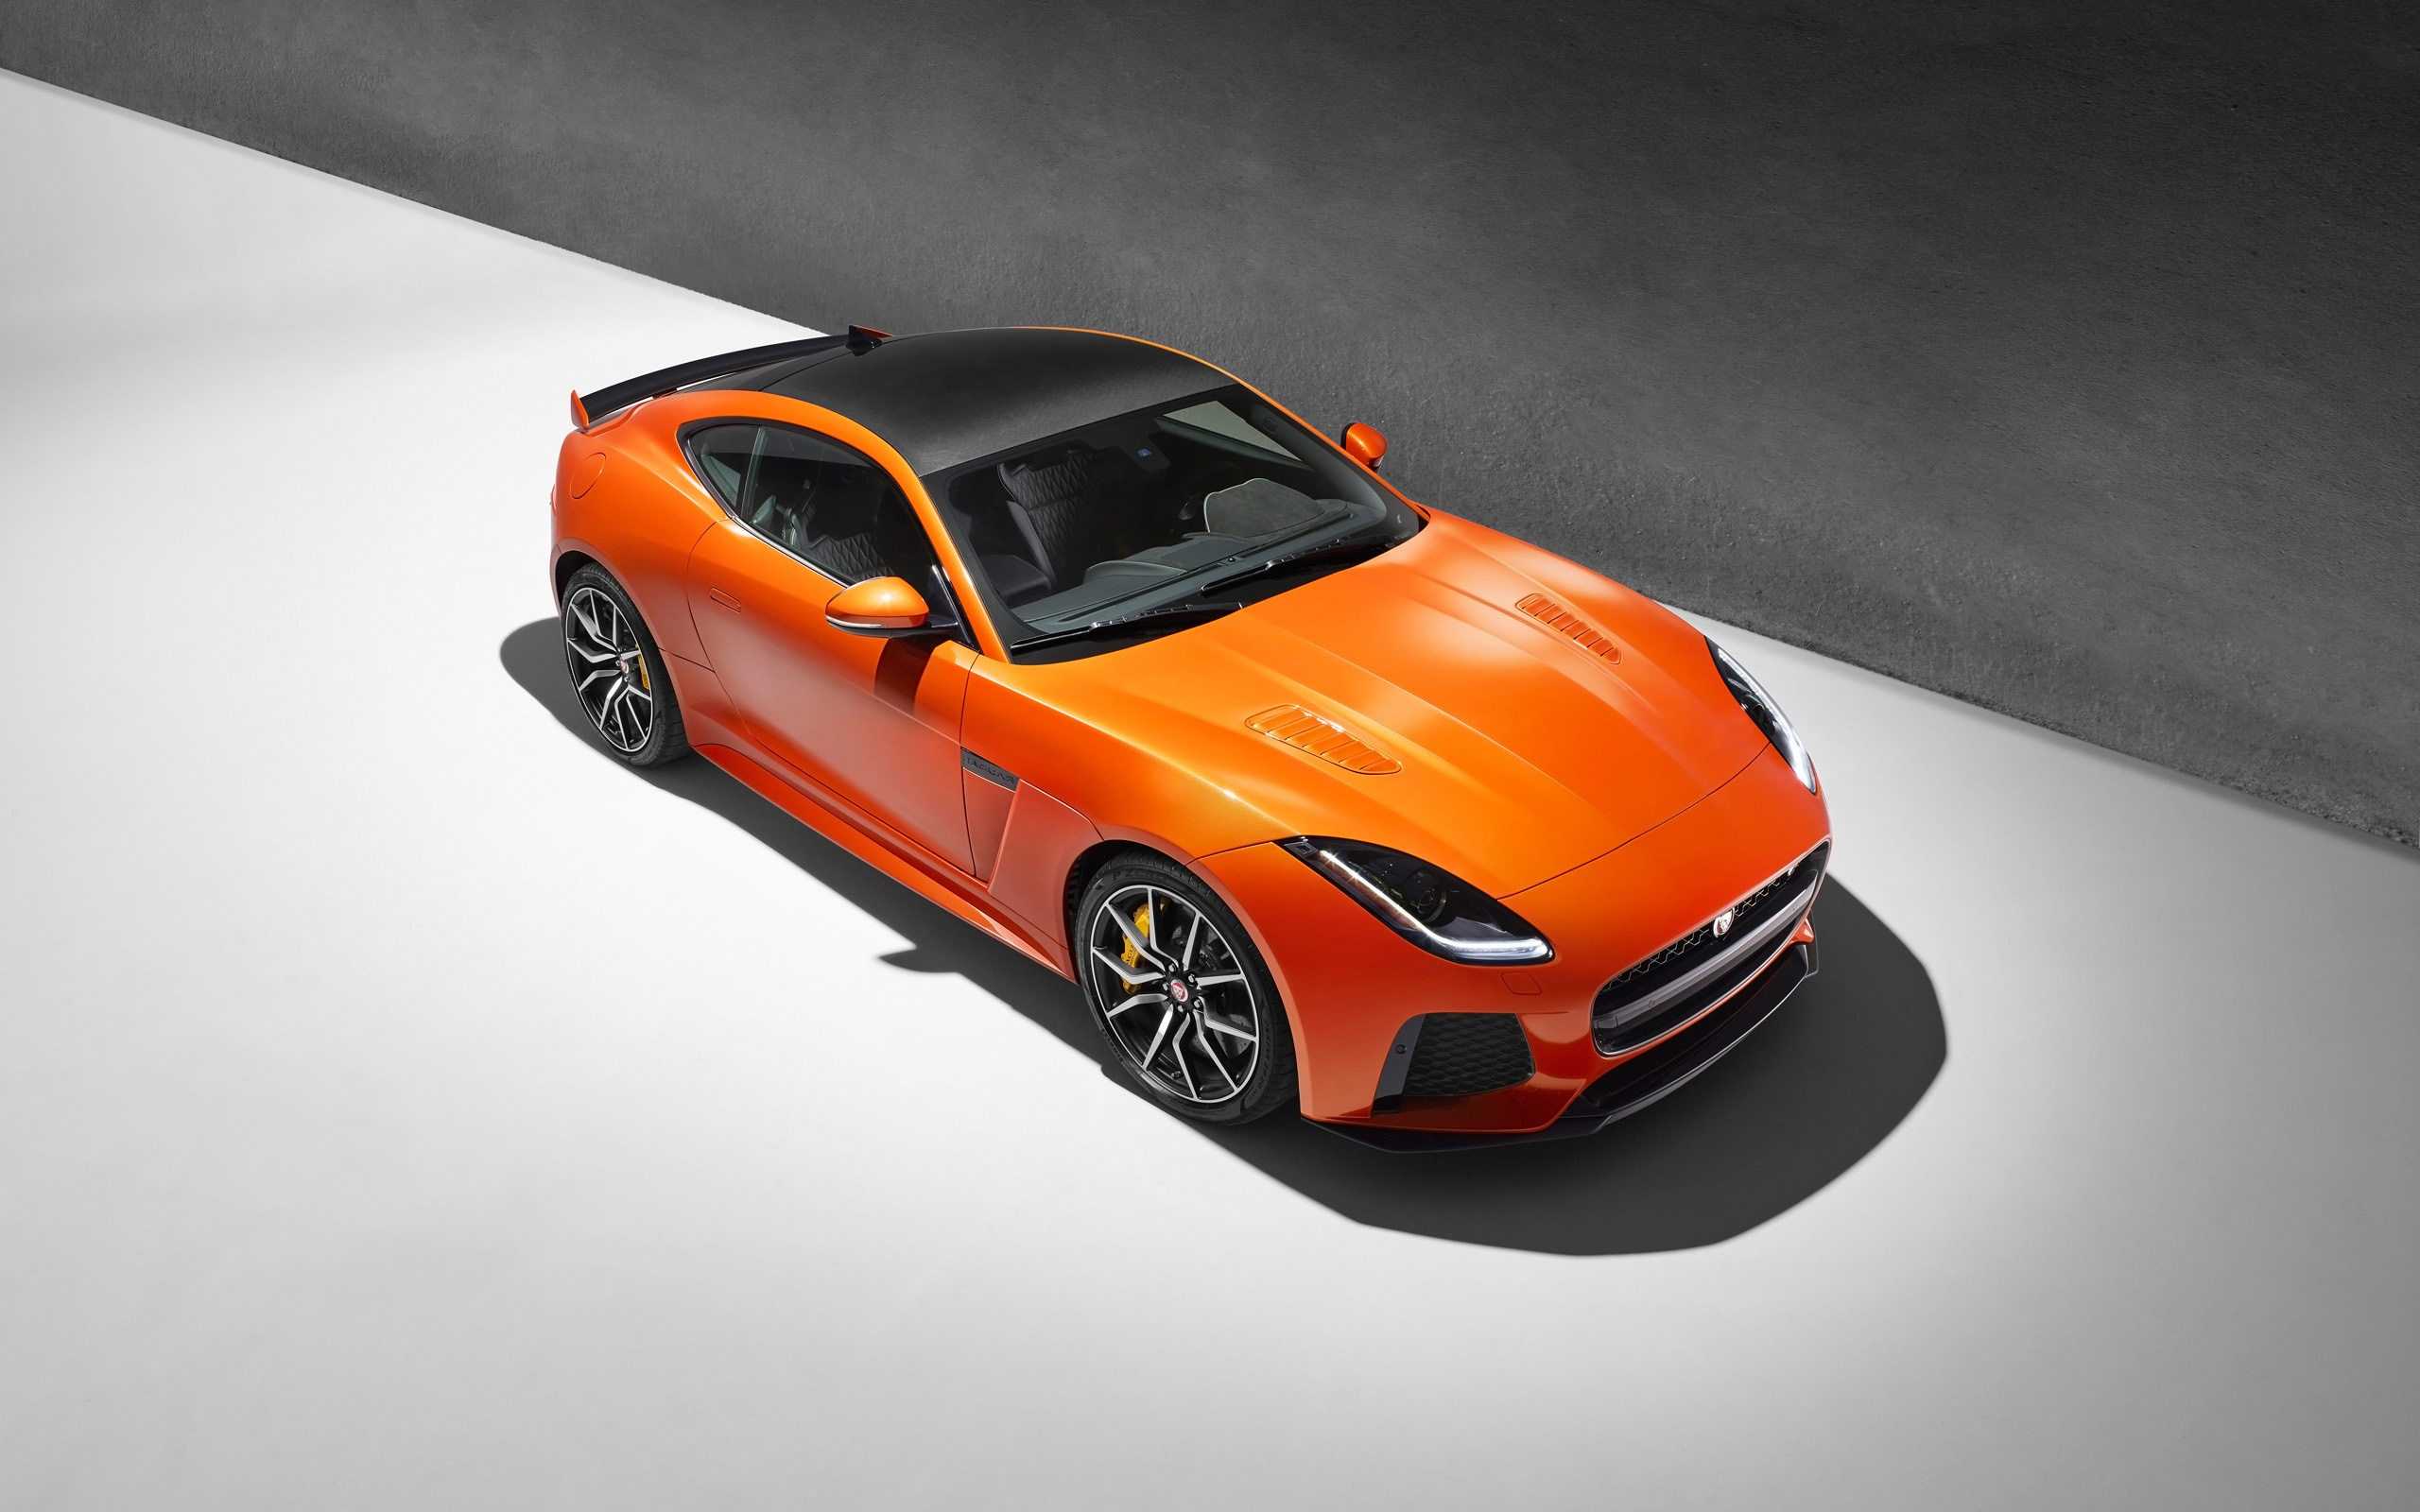 Jaguar F Type SVR Coupe Wallpapers in jpg format for free